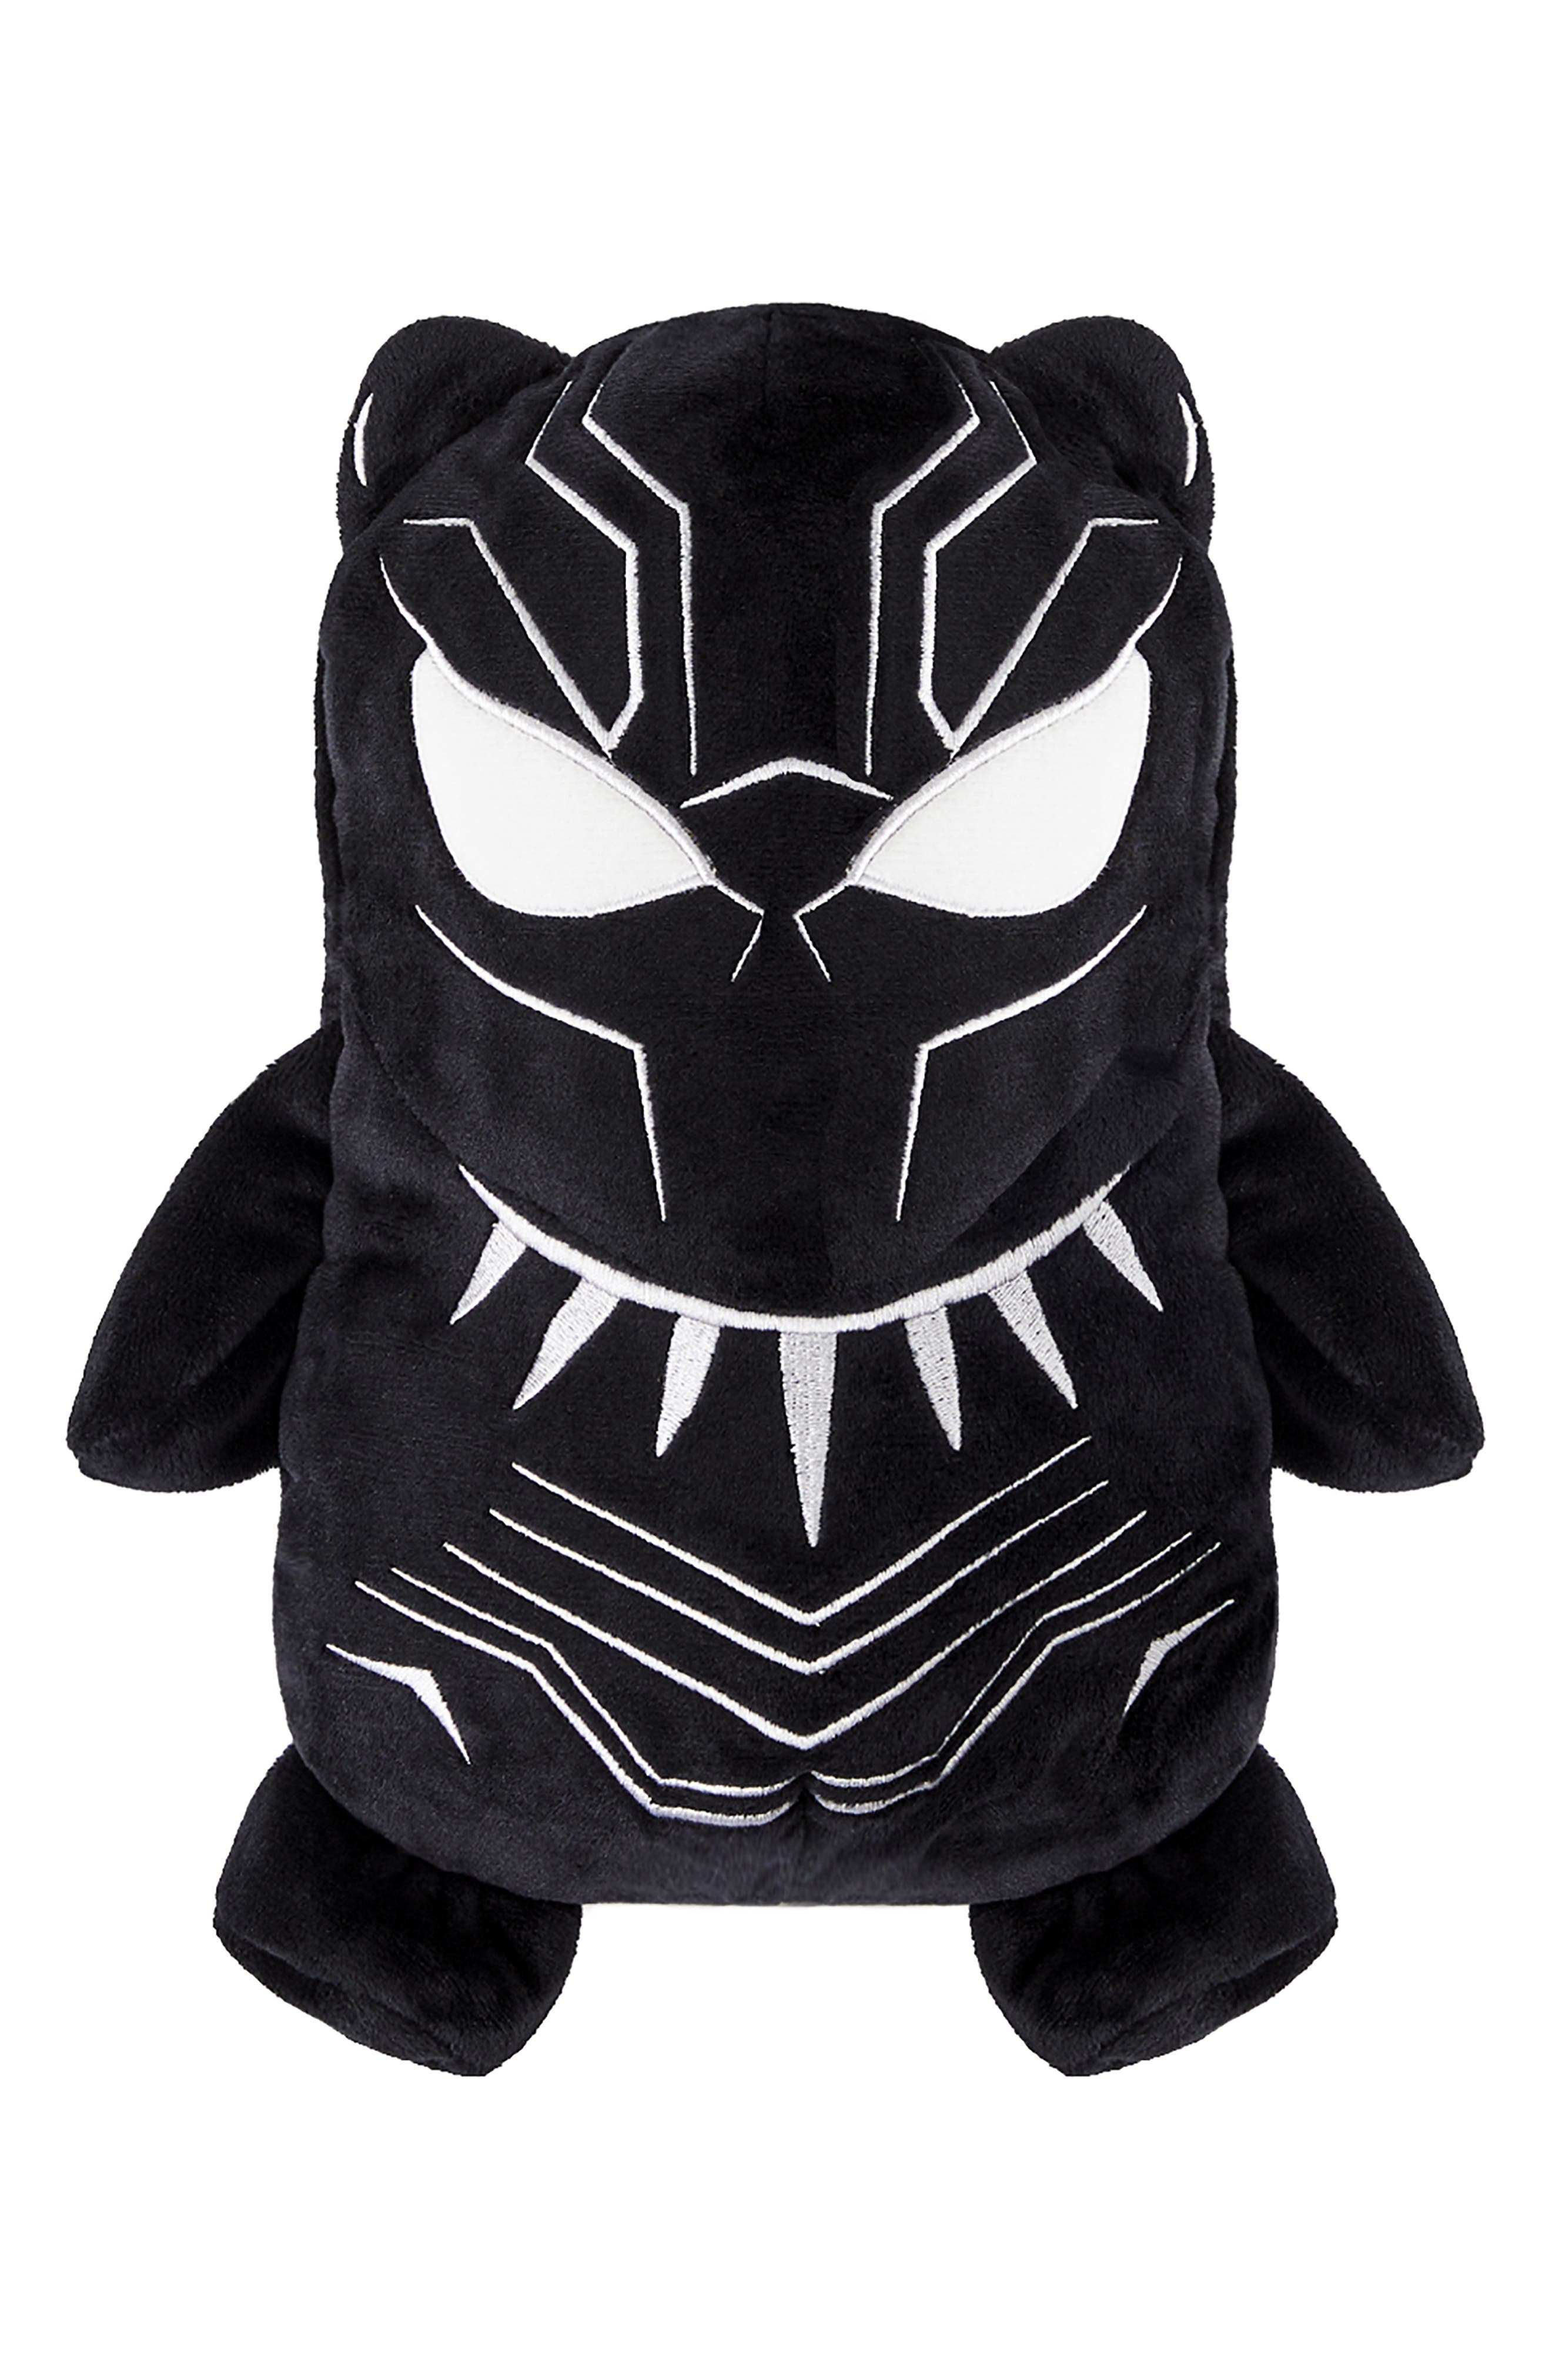 Marvel<sup>®</sup> 2018 Black Panther<sup>®</sup> 2-in-1 Stuffed Animal Hoodie,                         Main,                         color, BLACK